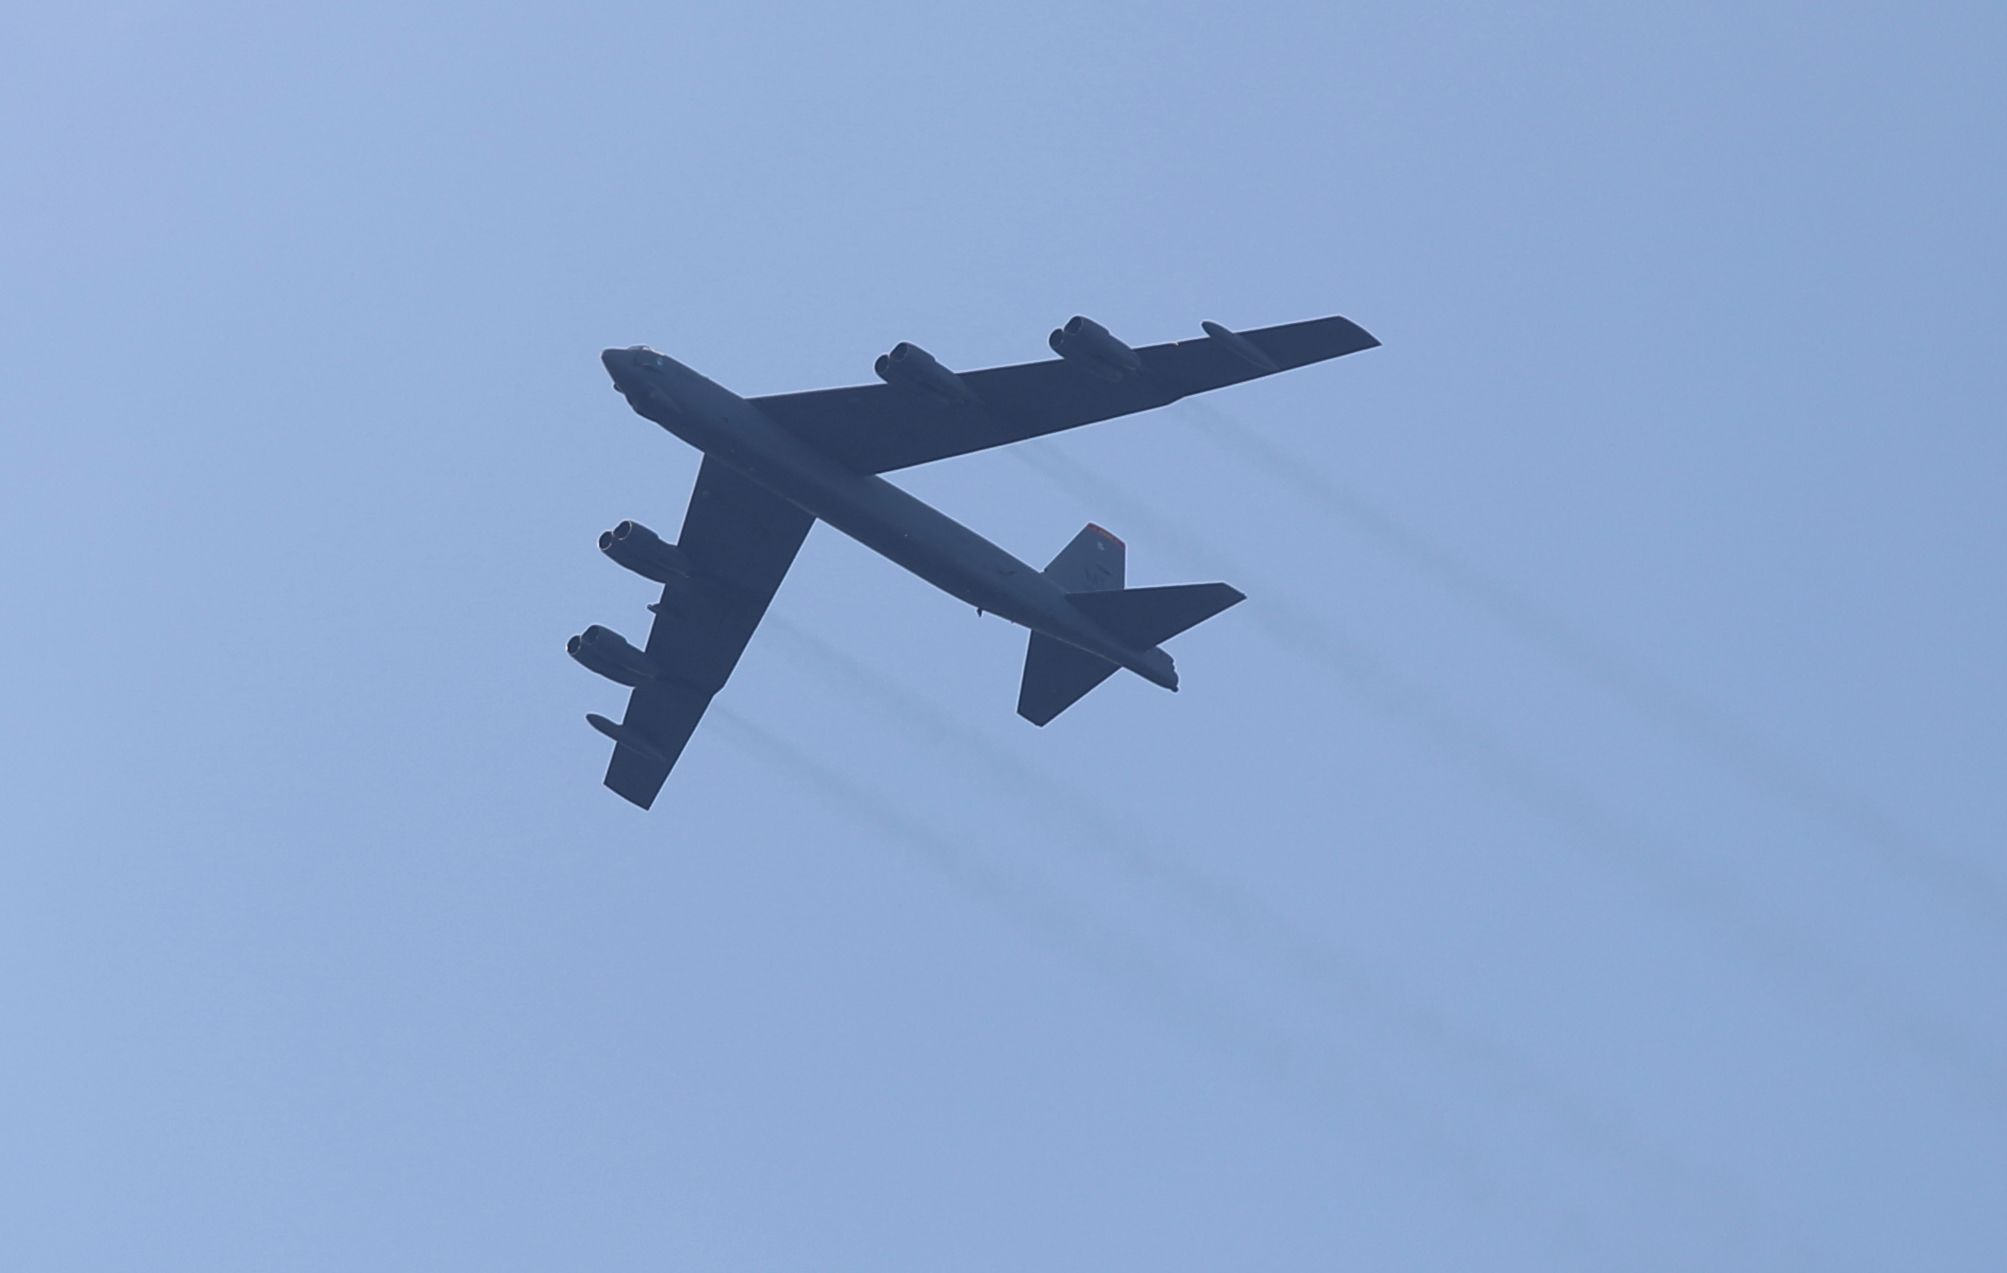 In a Show of Force, American B-52s Just Flew Over the Middle East to Deter Iran